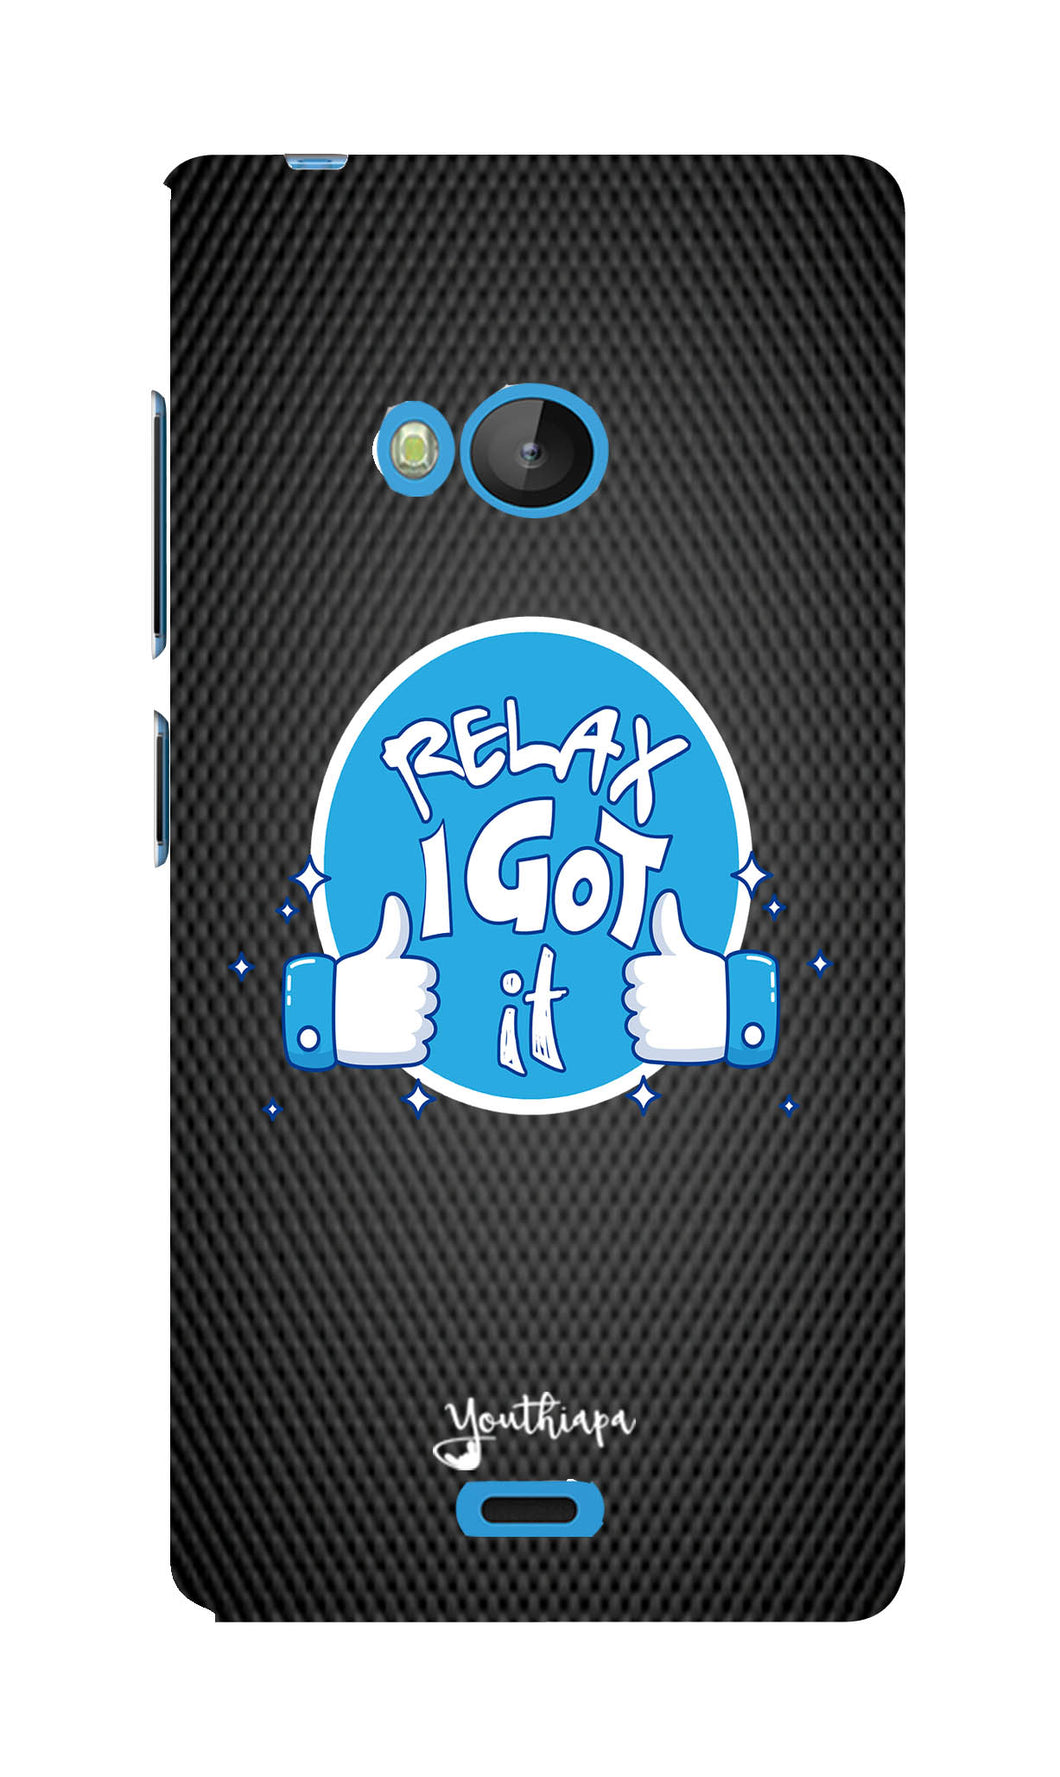 Relax Edition for Microsoft Lumia 540